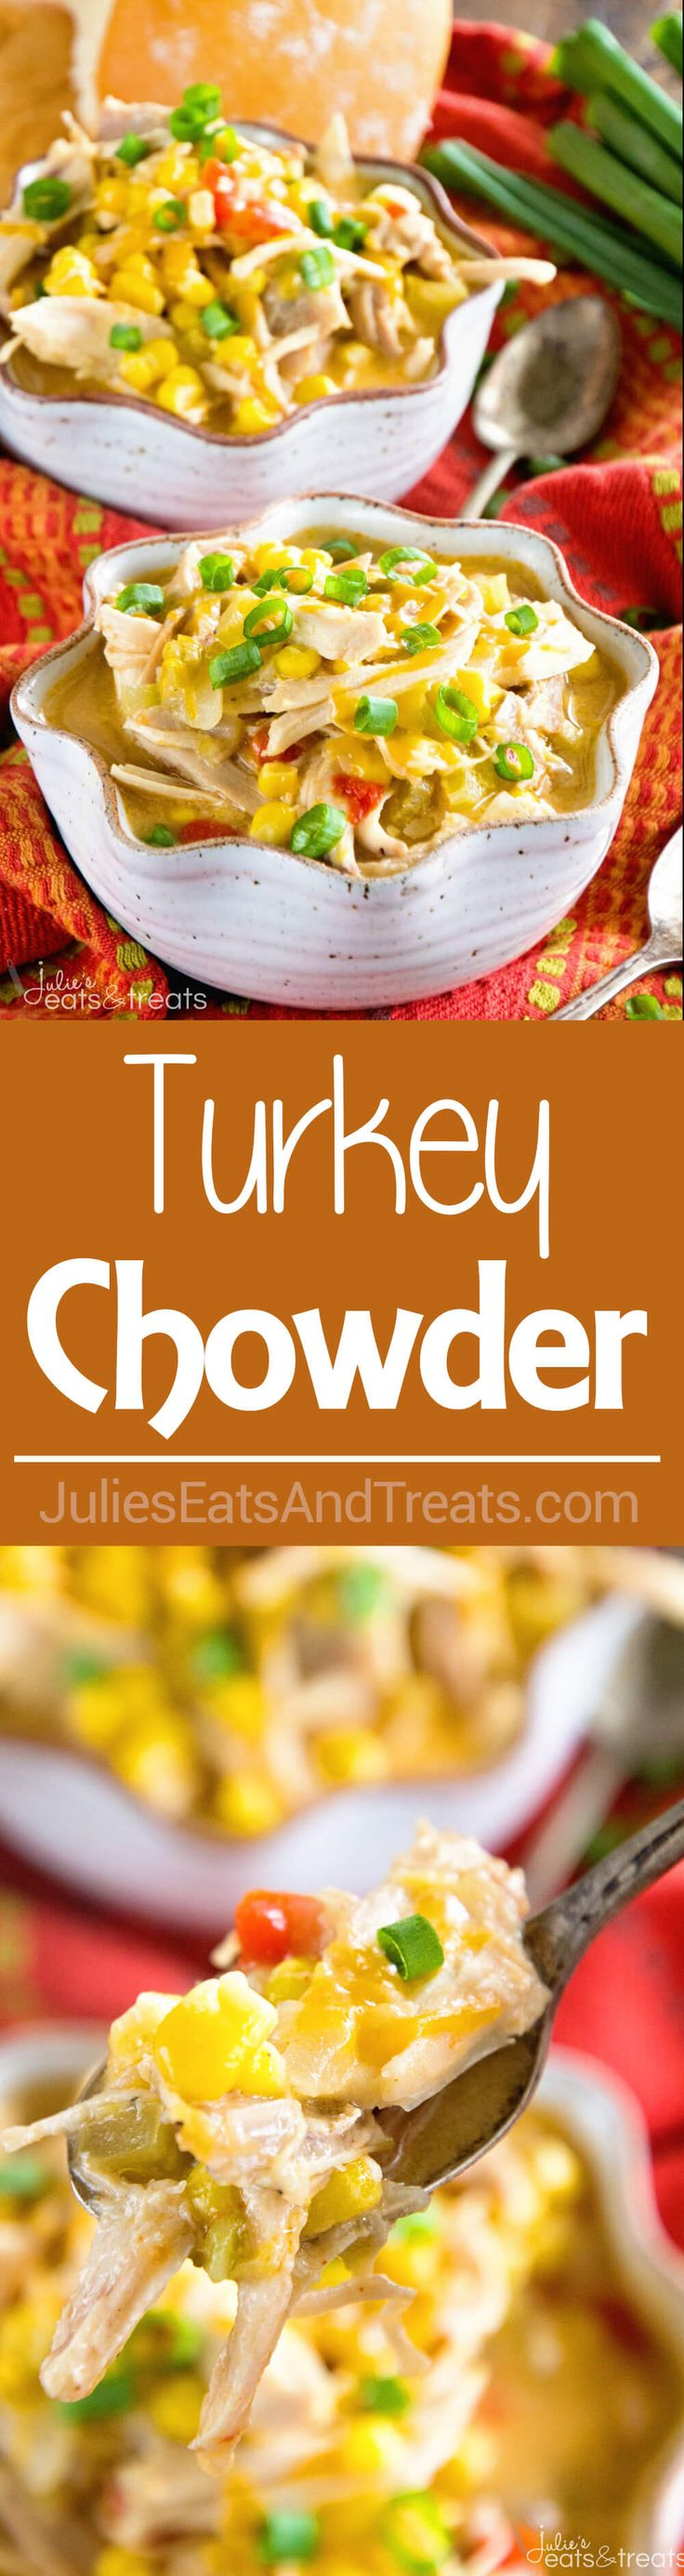 Turkey & Corn Chowder ~ Simple, Delicious, Hearty Chowder Perfect for Using up Leftover Turkey! Loaded with Roasted Bell Peppers, Green Chiles, Corn, Turkey and Cheese! ~ http://www.julieseatsandtreats.com